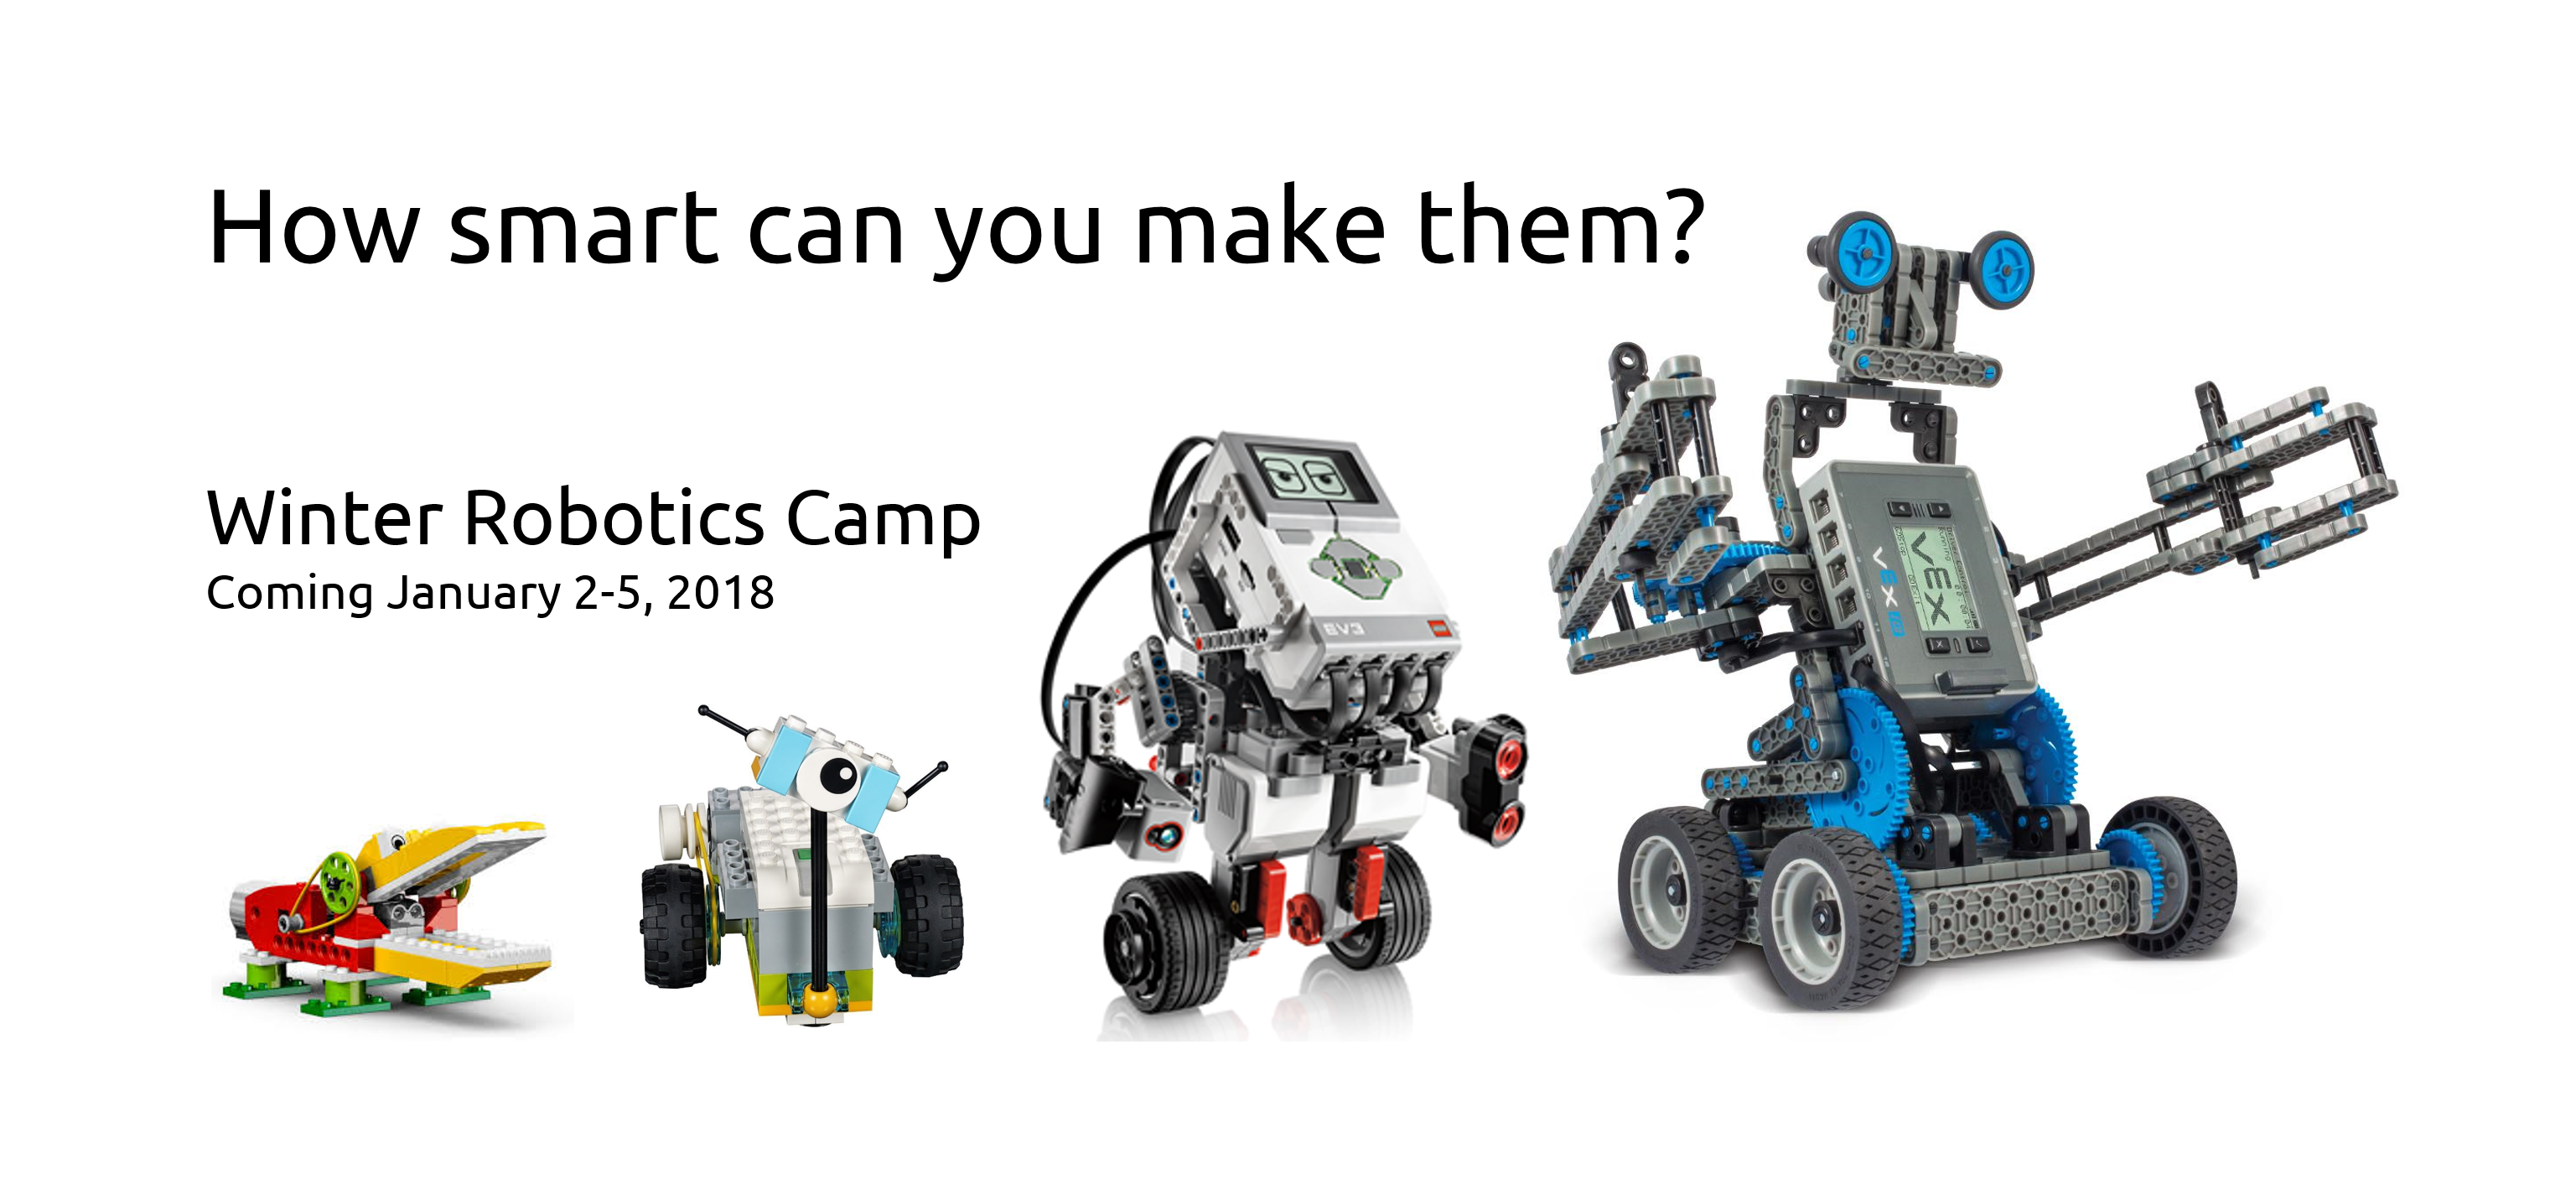 Robotics Winter Camp With Lego Education At Ubc January 2018